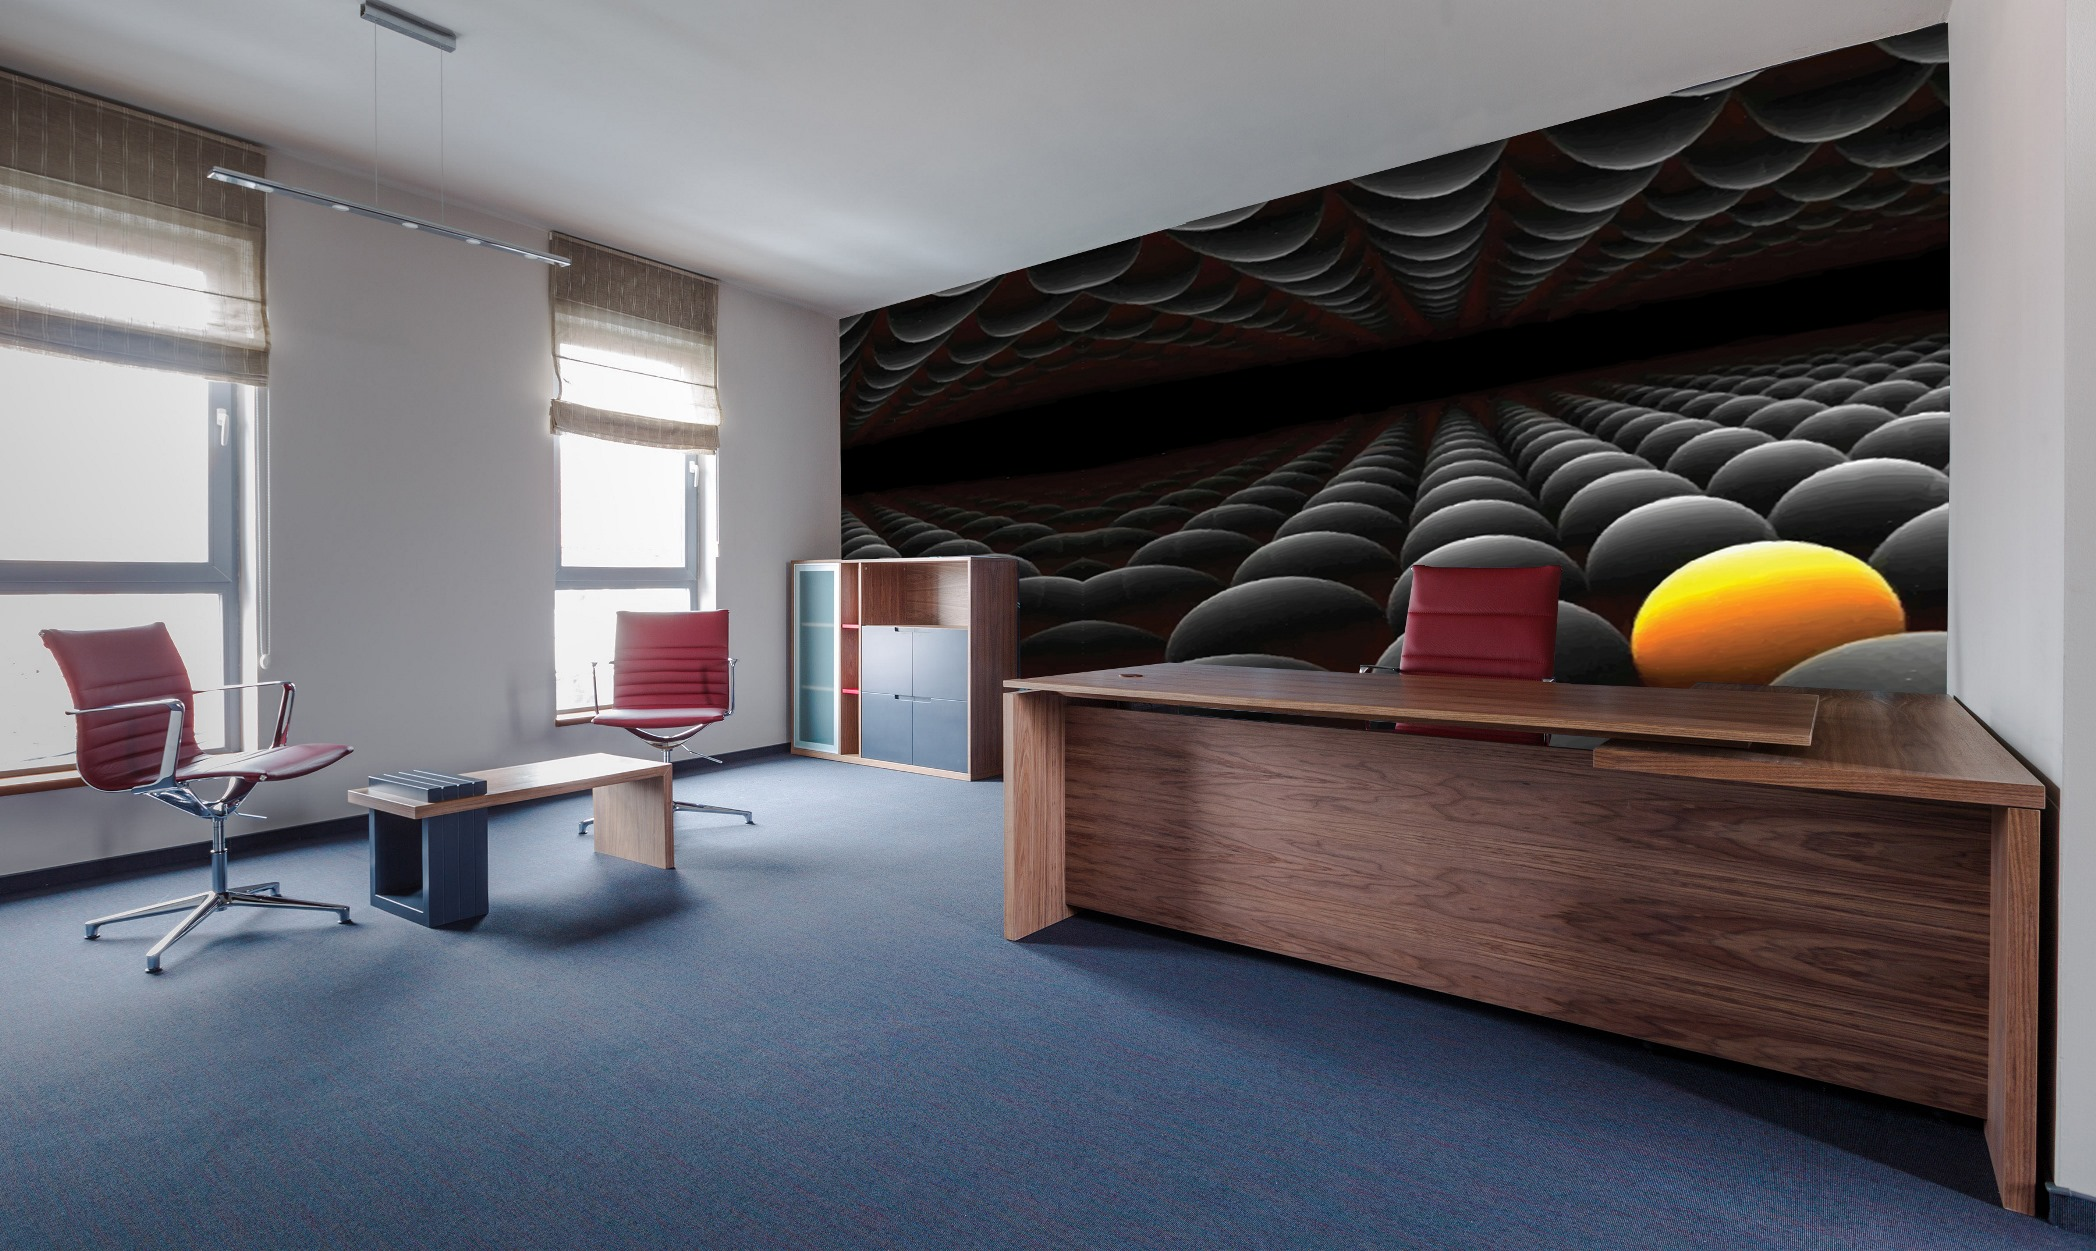 Three Dimensions wallpapers prints collection by INTUITIVE DESIGN